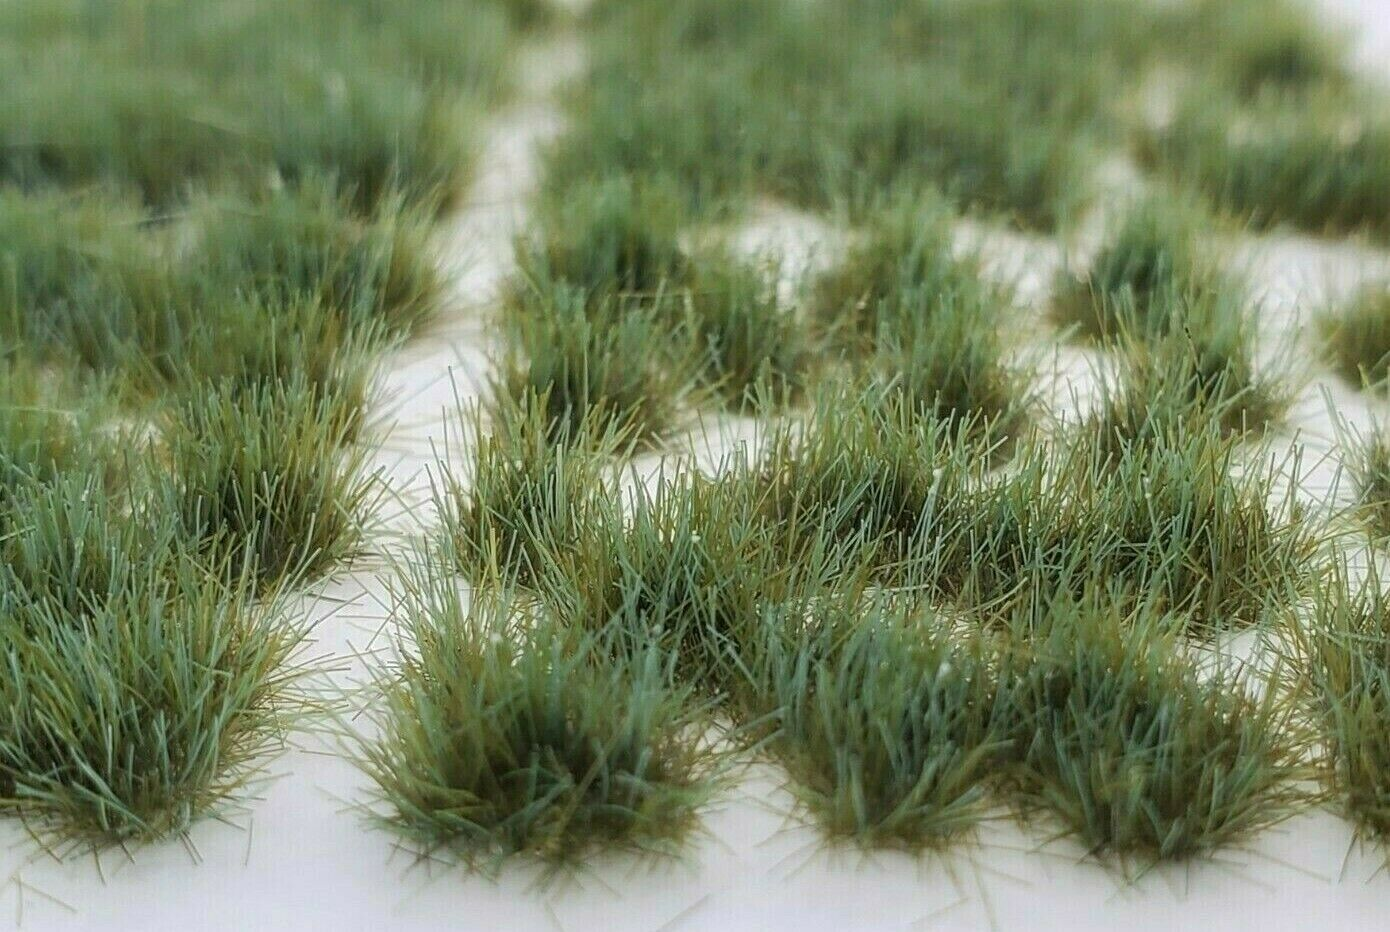 Self Adhesive Static Grass Tufts for Wargaming Terrain/Bases -Forest Green- 4mm